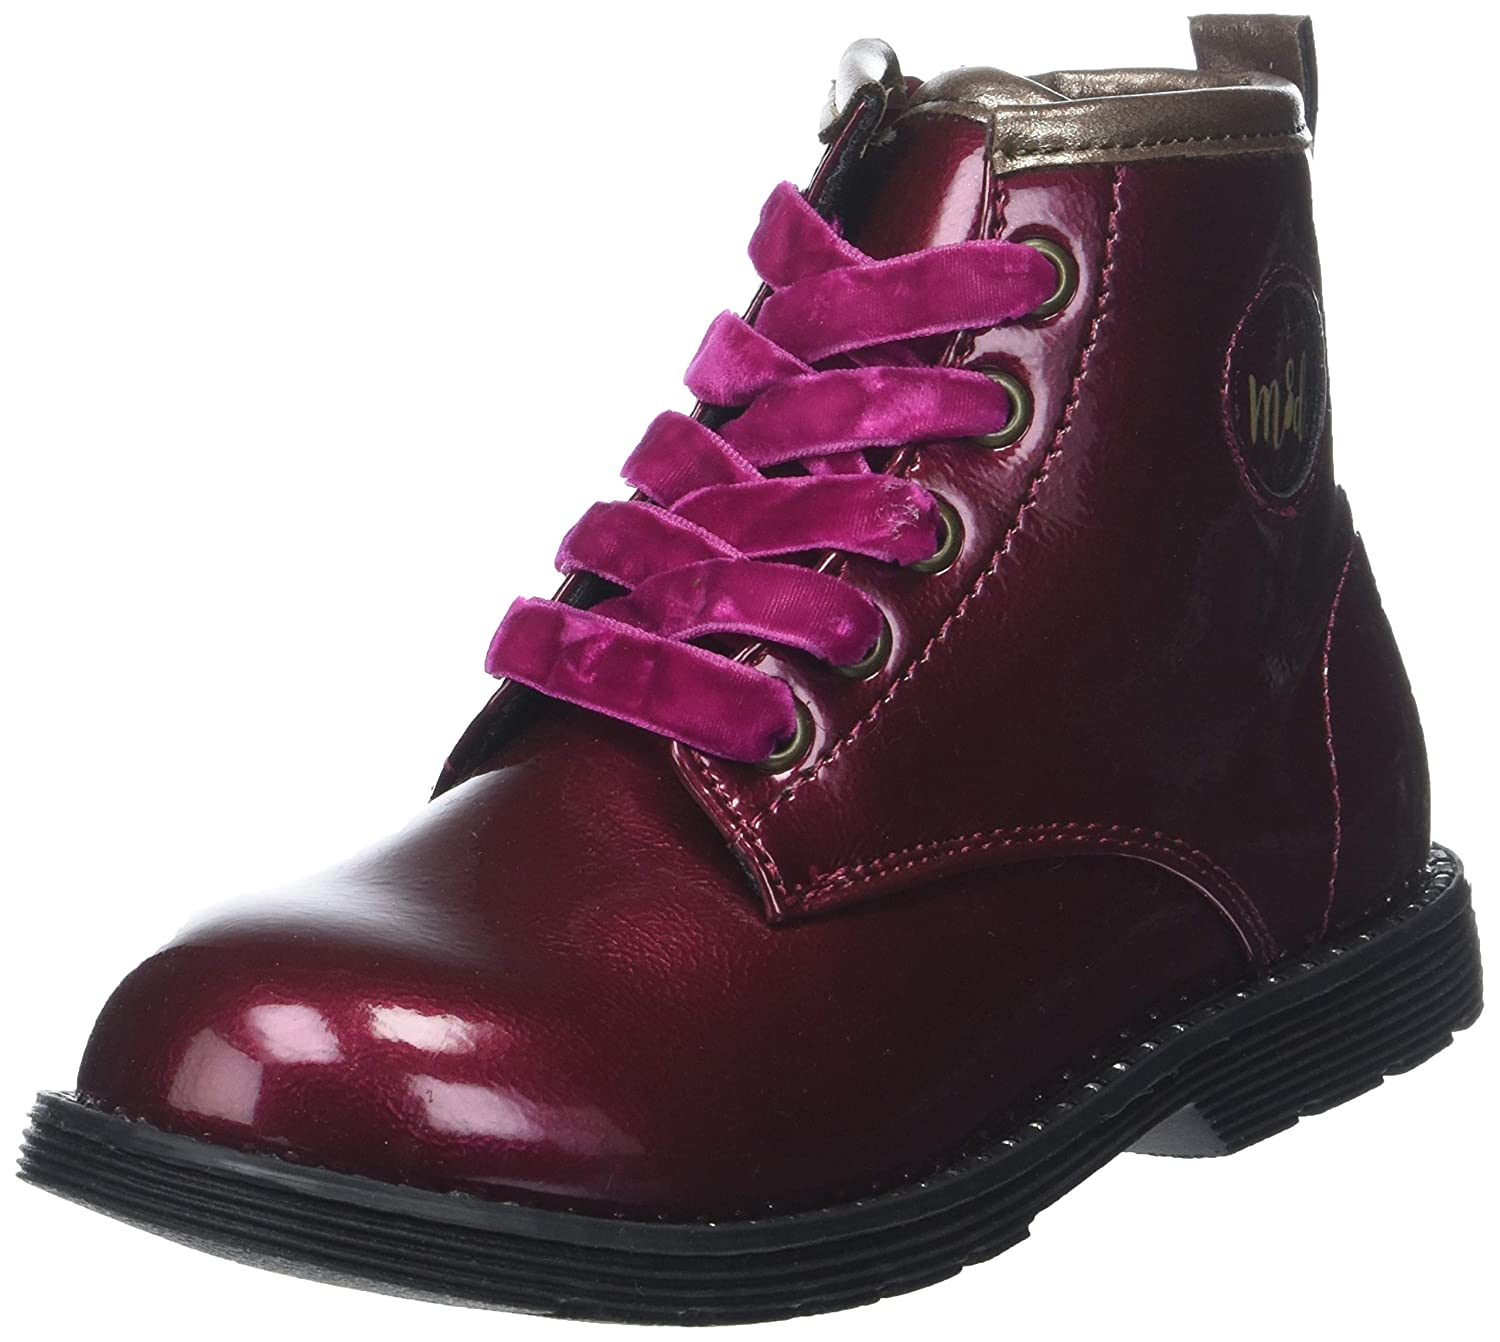 Mod8 Polly, Botines Fille